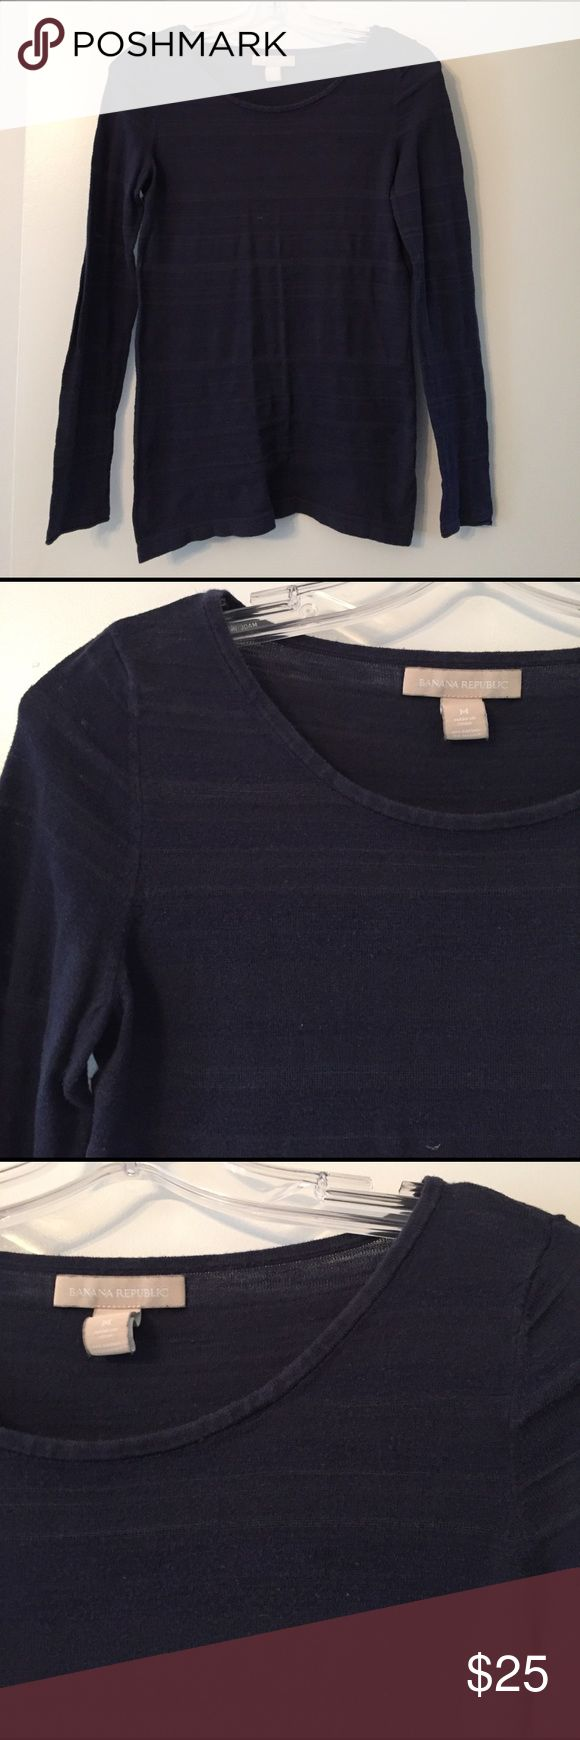 SOFT navy long sleeve top Worn once. Navy long sleeve with horizontal lines, SOFT! No signs of wear or damage. Banana Republic Tops Tees - Long Sleeve